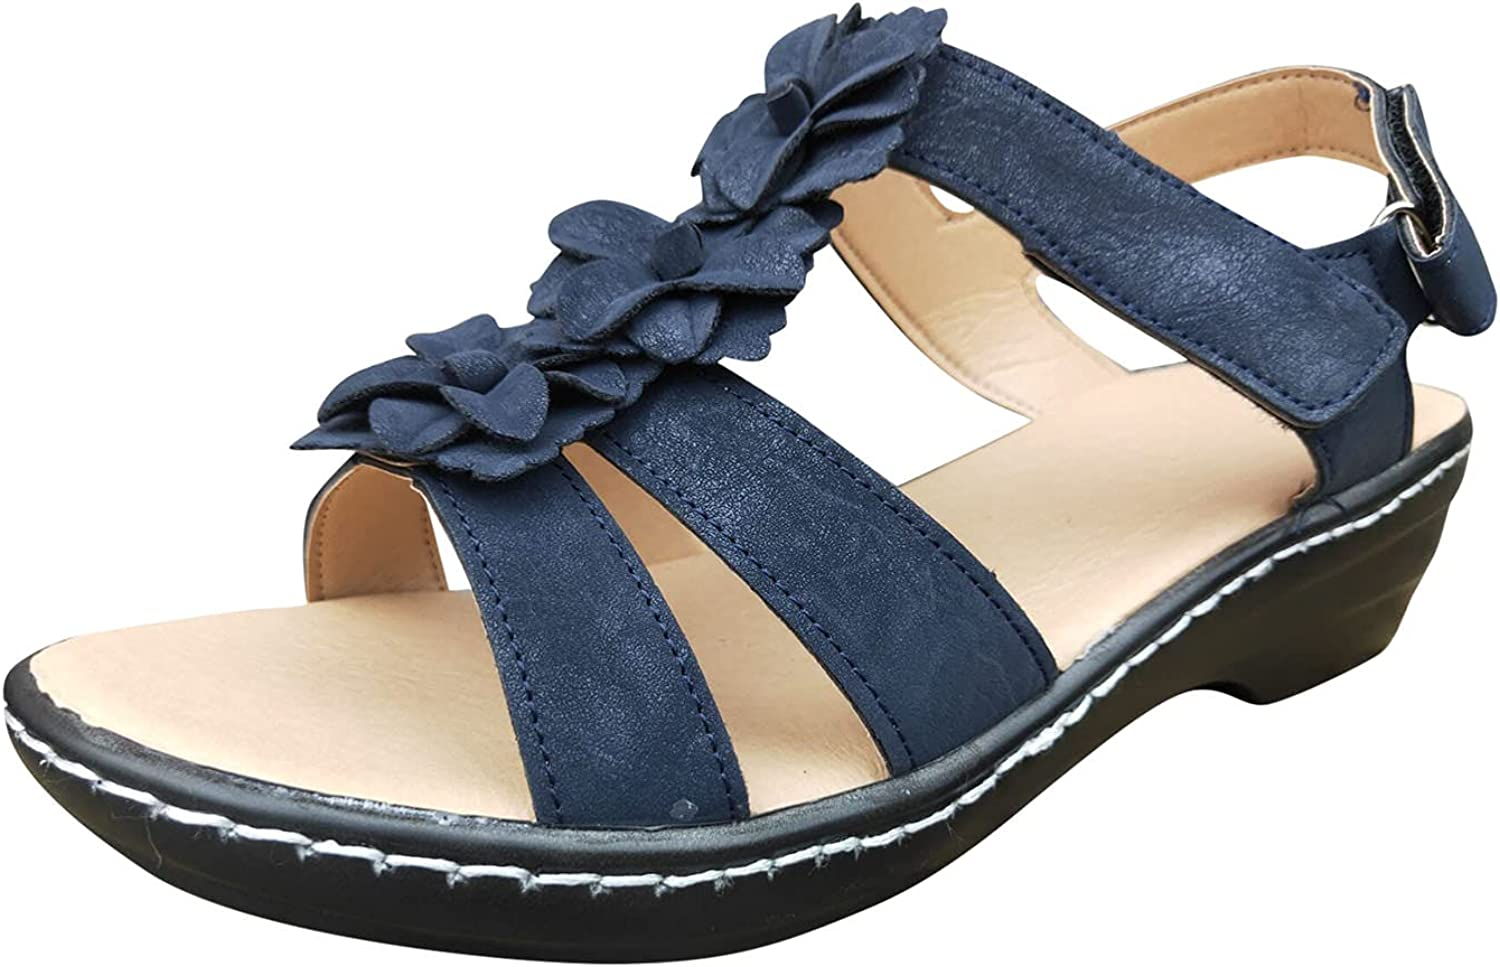 USYFAKGH Wedges Sandals For Women Flat Sandals For Women Summer Women's Fashion Summer Hollow Wedge Fish Mouth Flower Casual Comfortable Sandals White,Blue,Gold